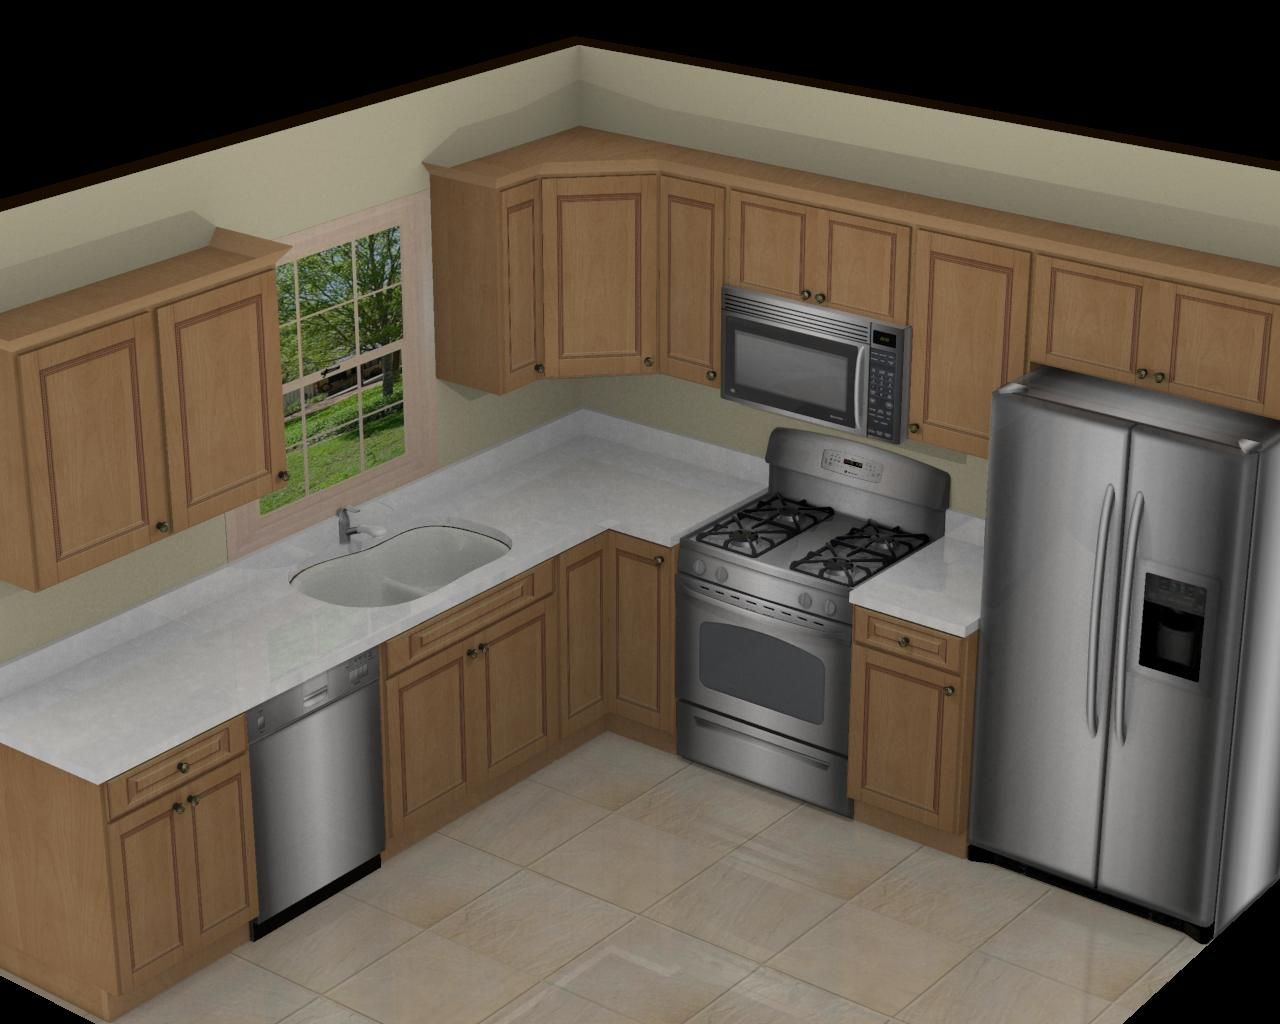 10x10 kitchen on pinterest l shaped kitchen kitchen for Kitchen cabinets 10x10